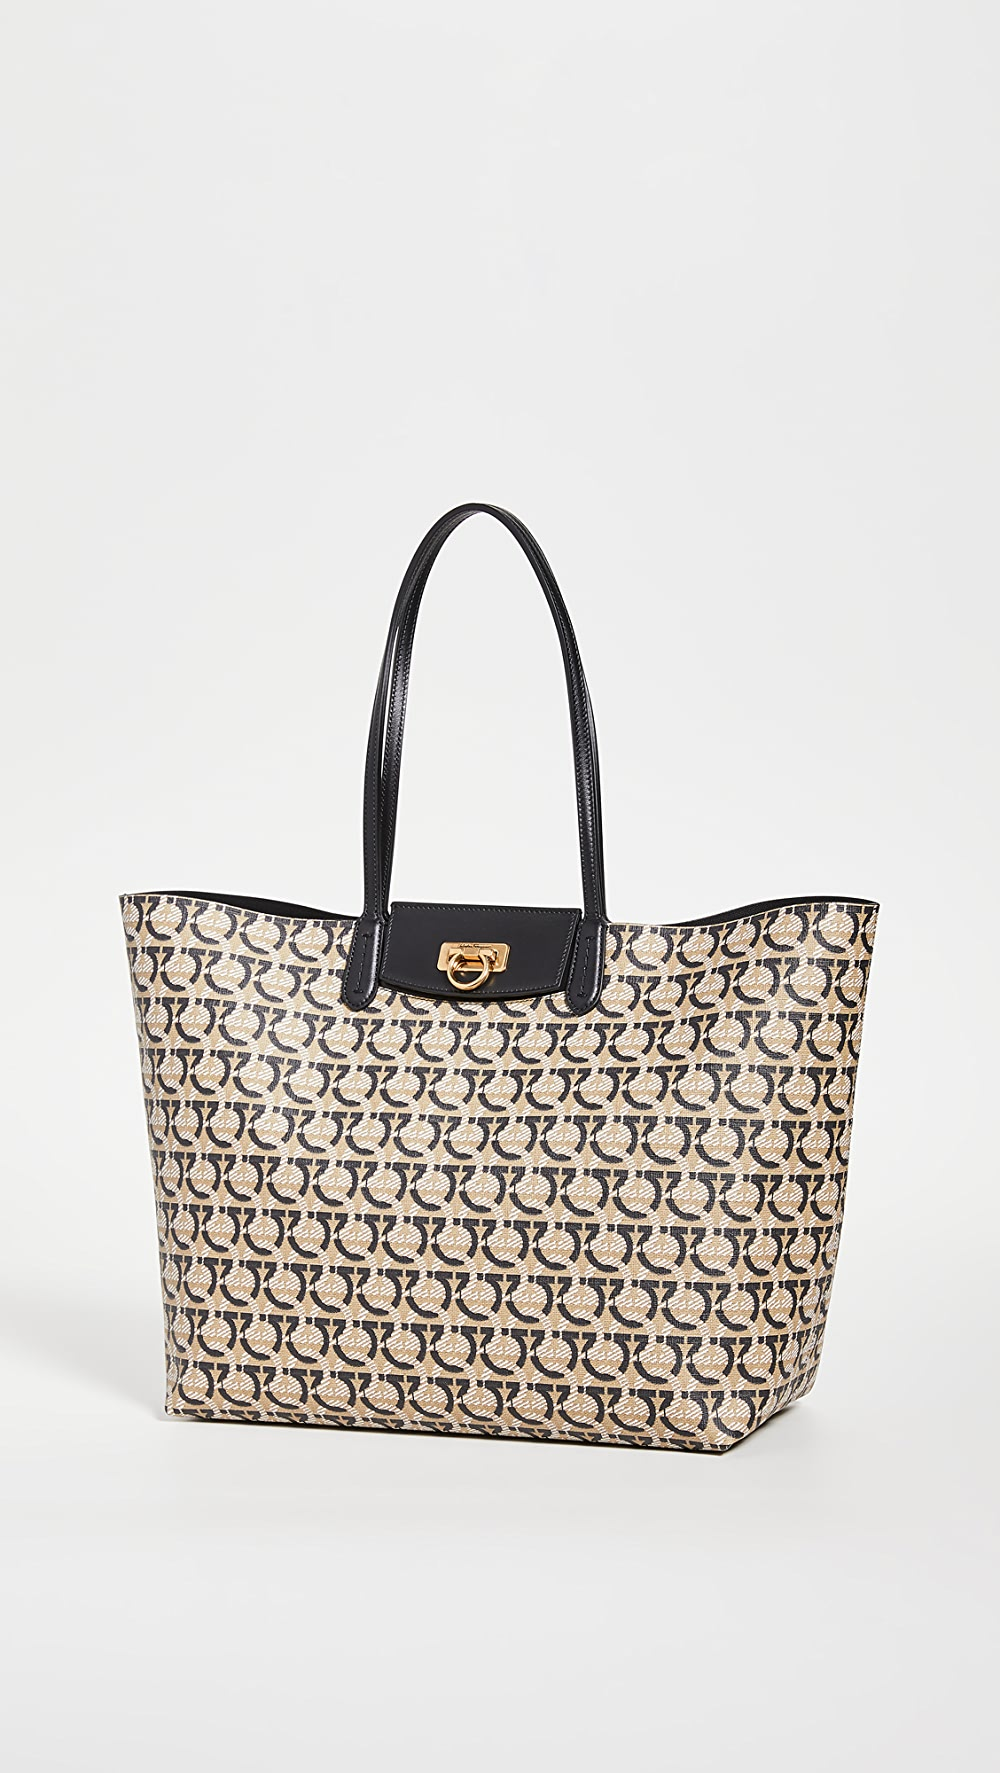 Responsible Salvatore Ferragamo - All Gancini Tote Ample Supply And Prompt Delivery